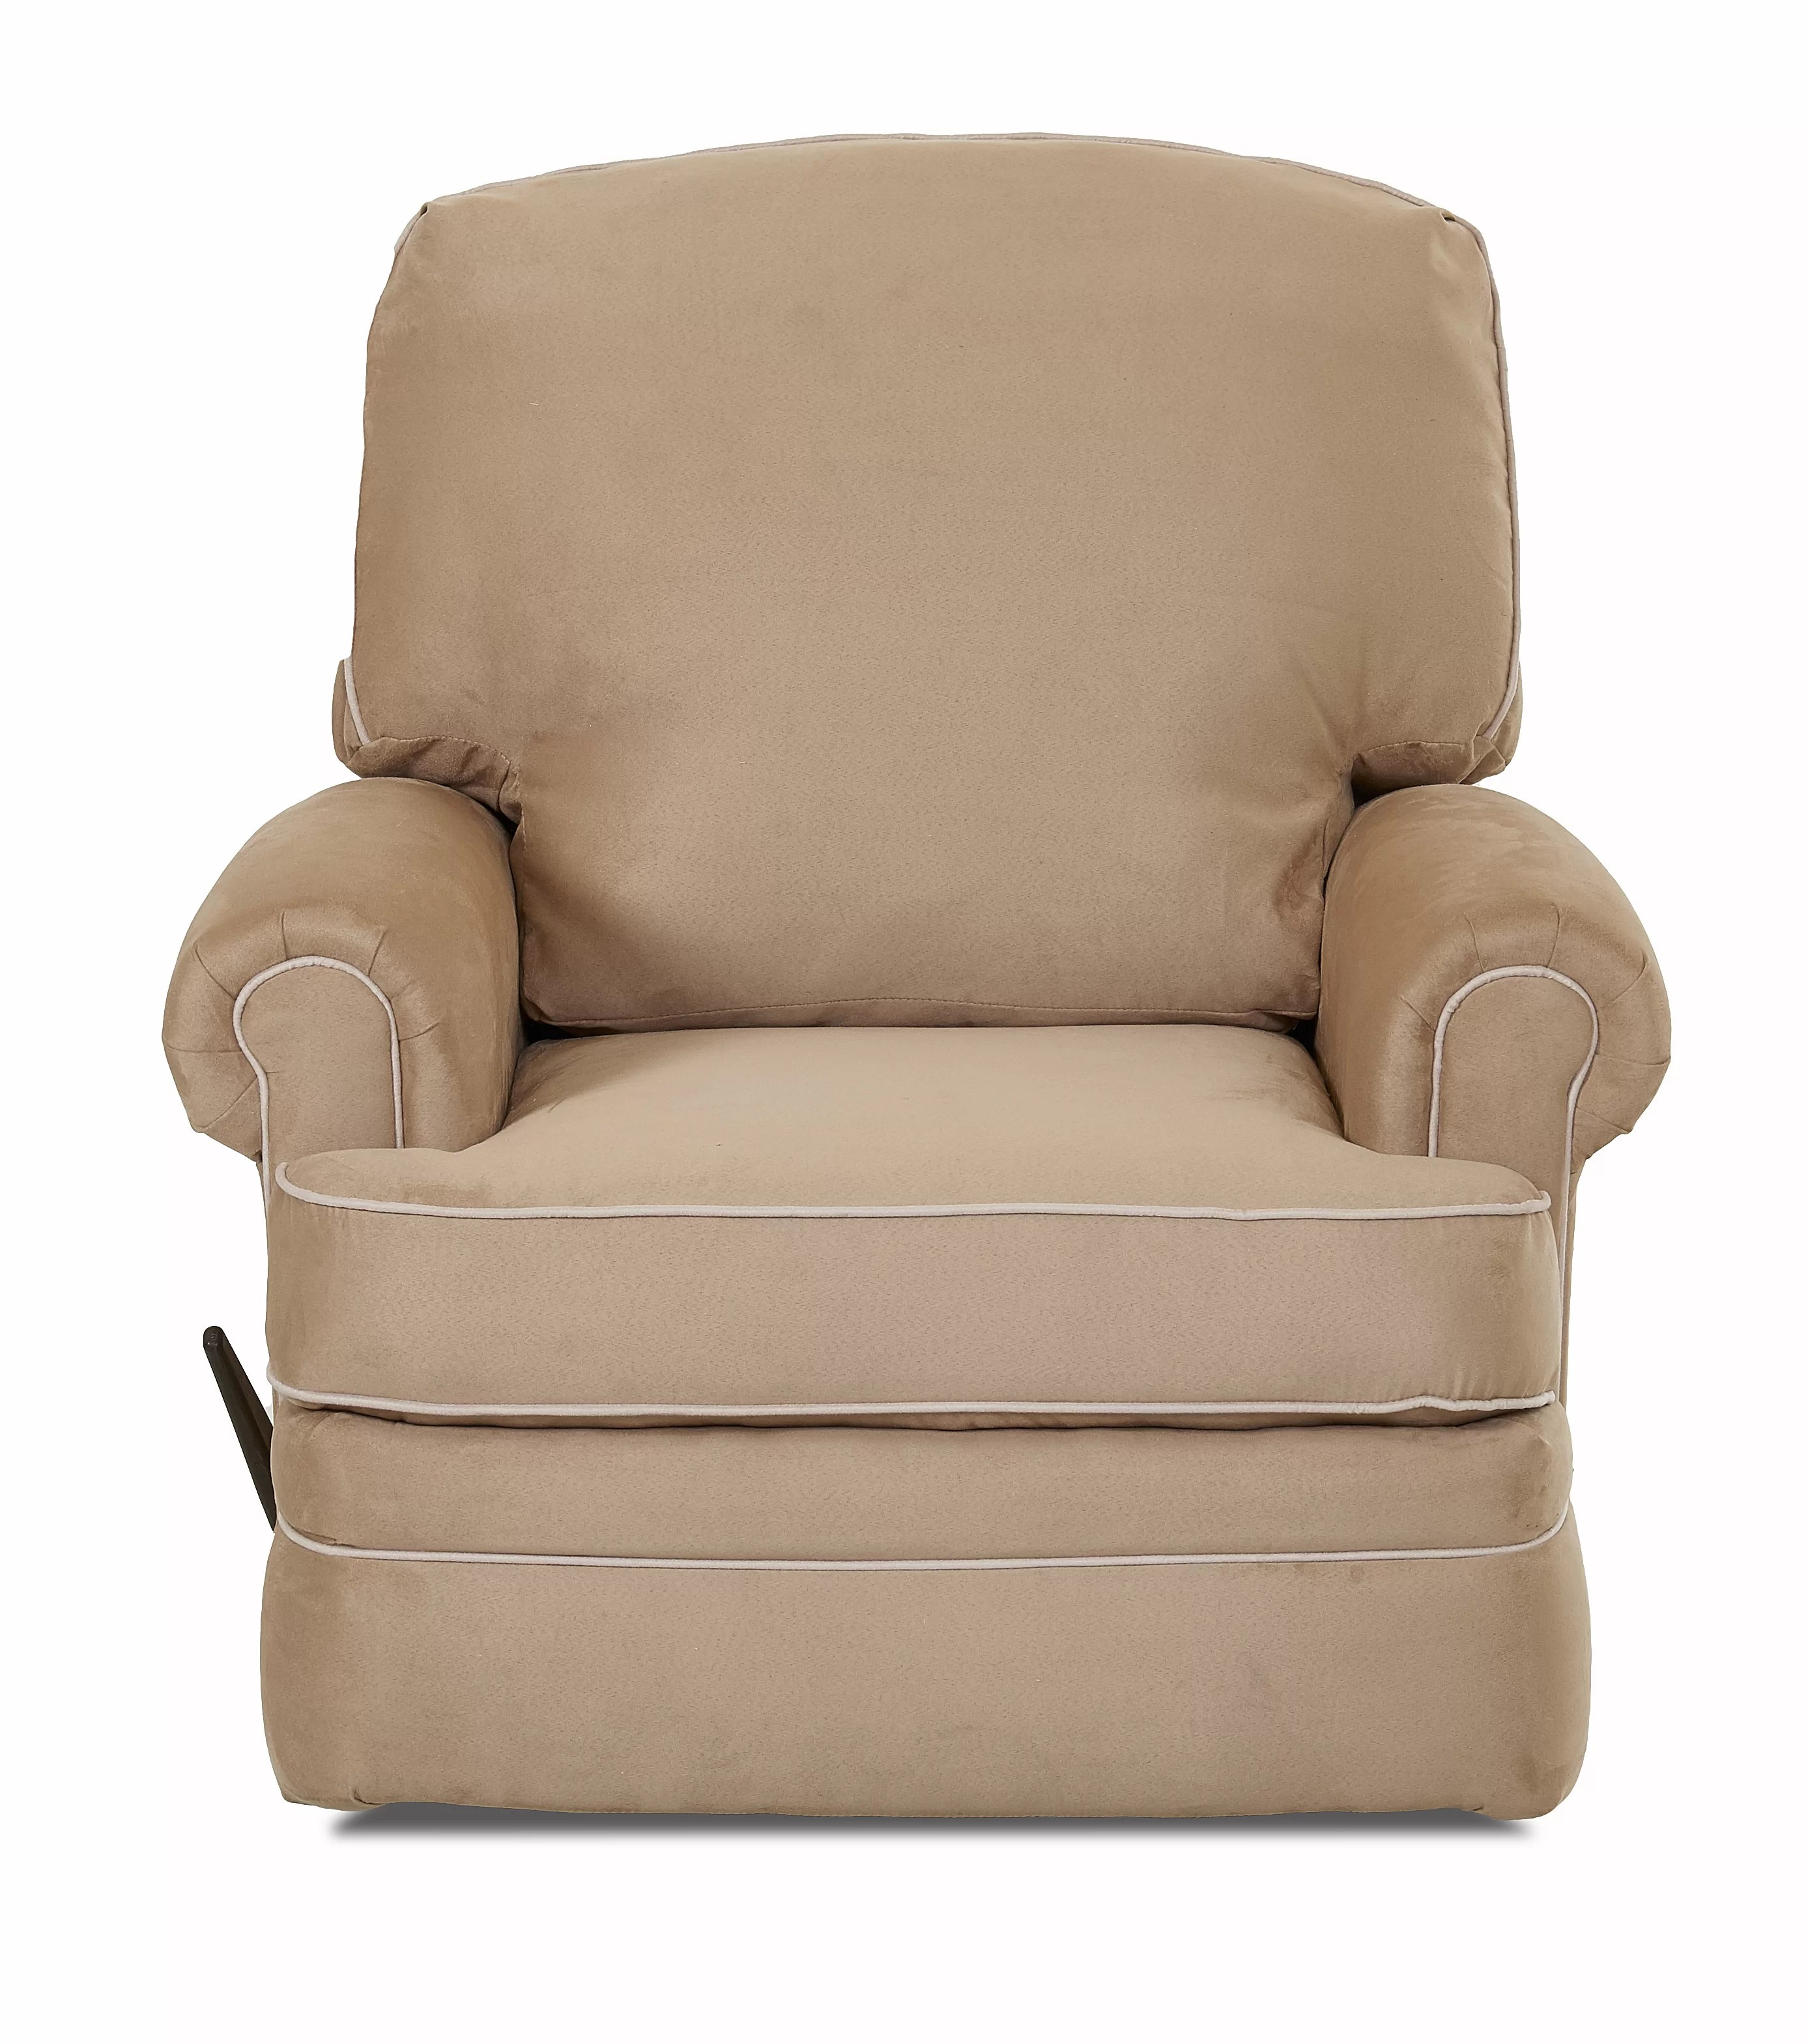 Dauphin Chairs Dauphin Swivel Gliding Recliner